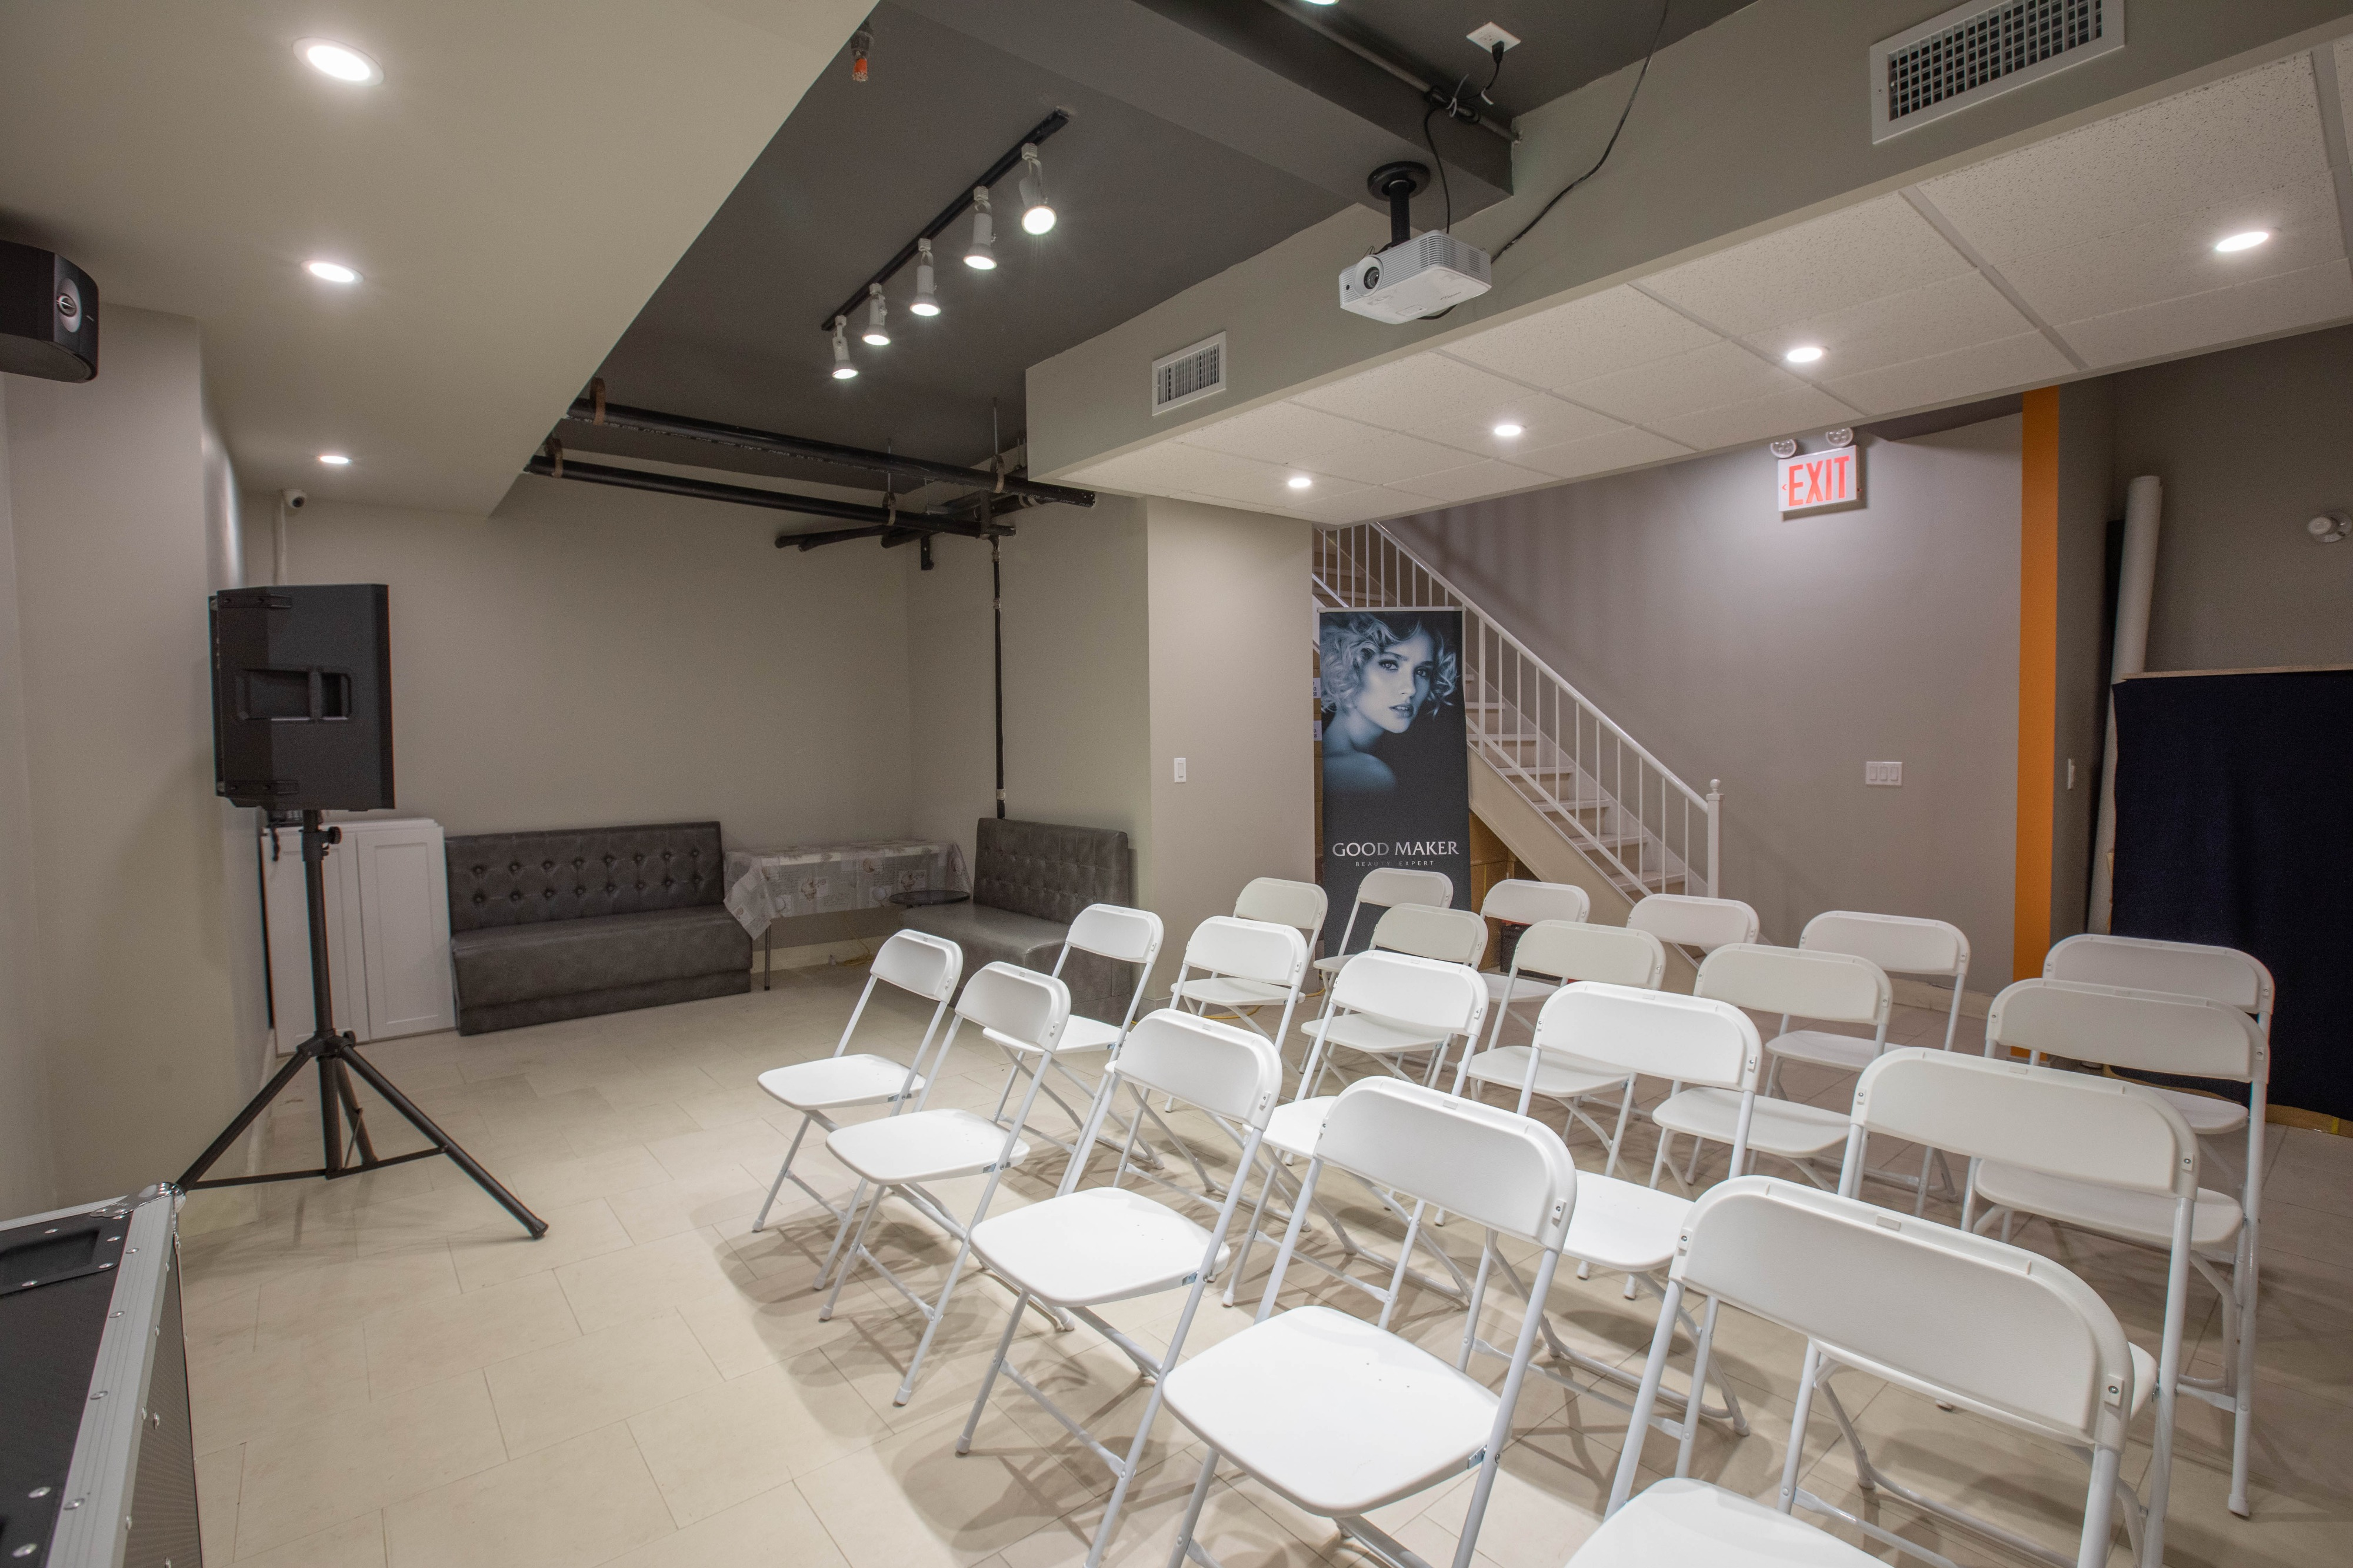 Classroom/Meetings/Conference Room with: Projector/Screen, Tables/Chairs,  Microphone/Speaker